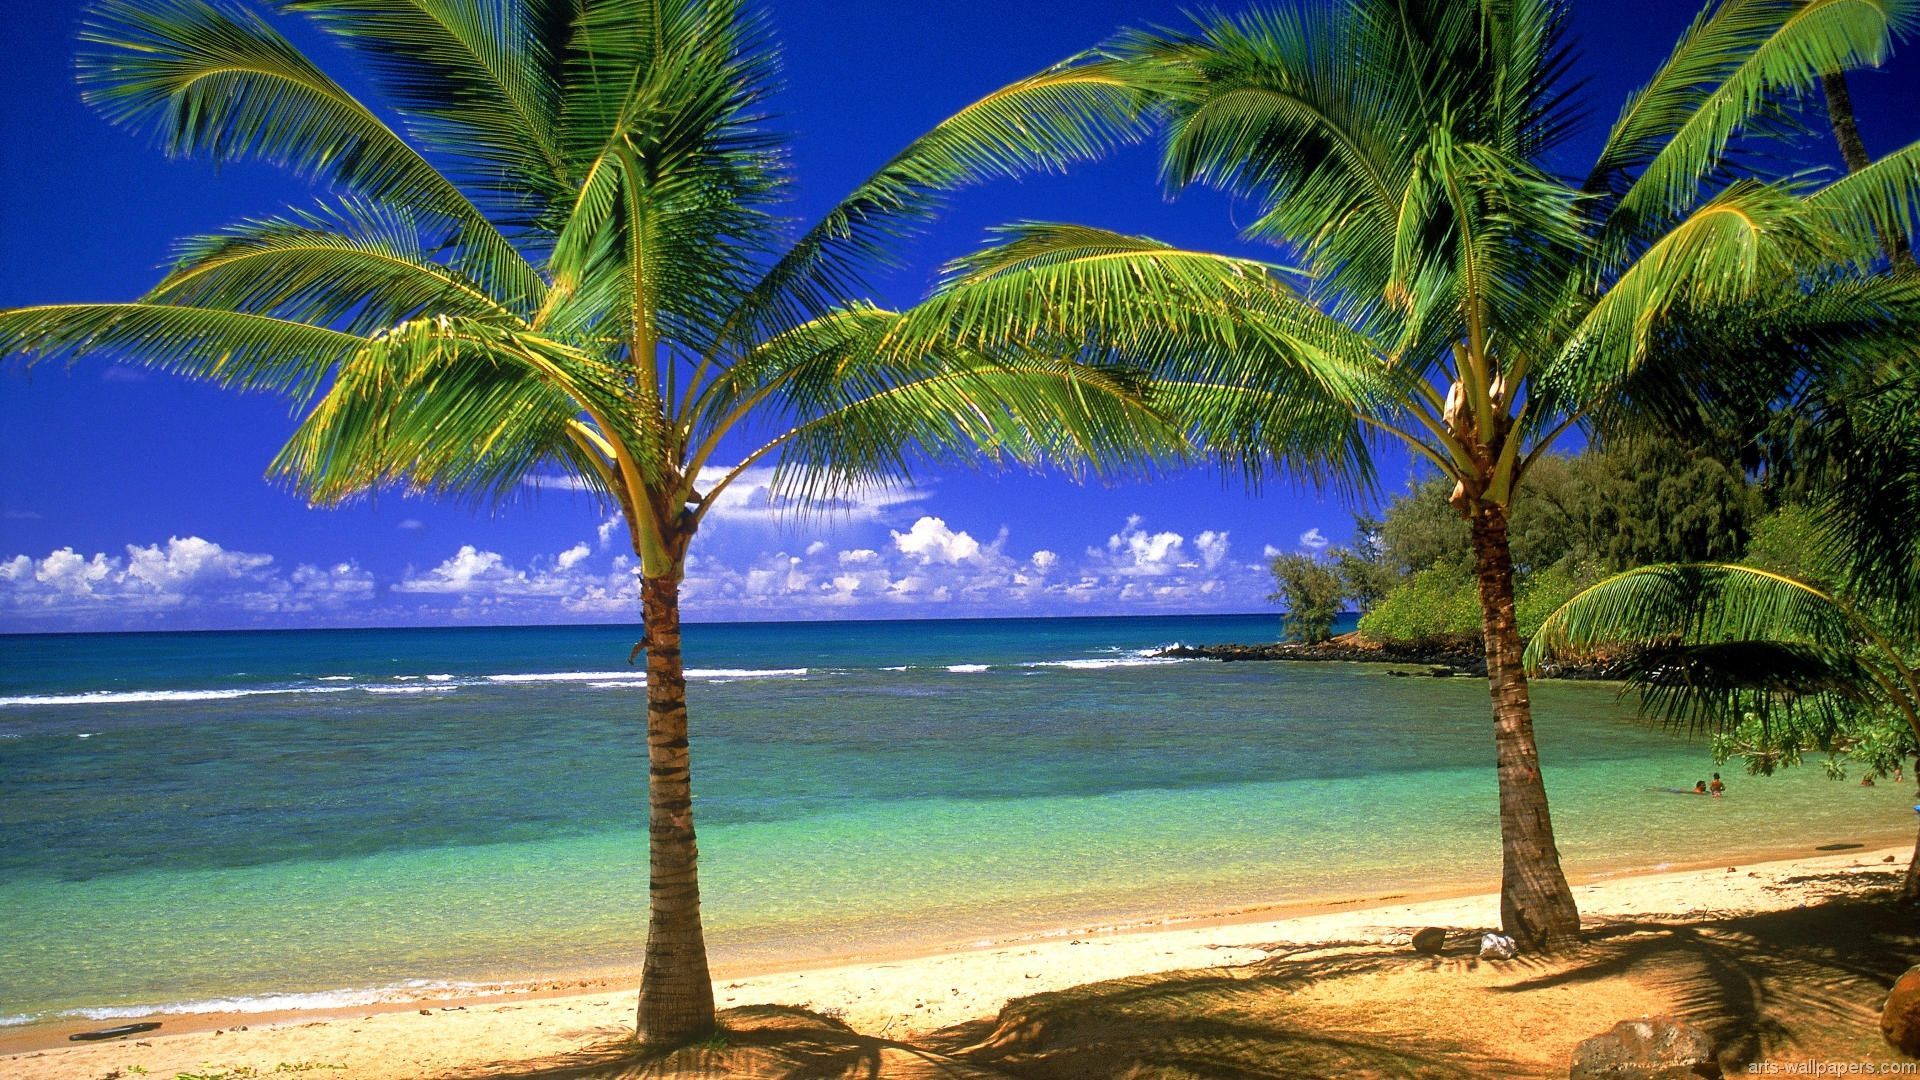 Tropical Beach Paradise Backgrounds: Beautiful Beaches.